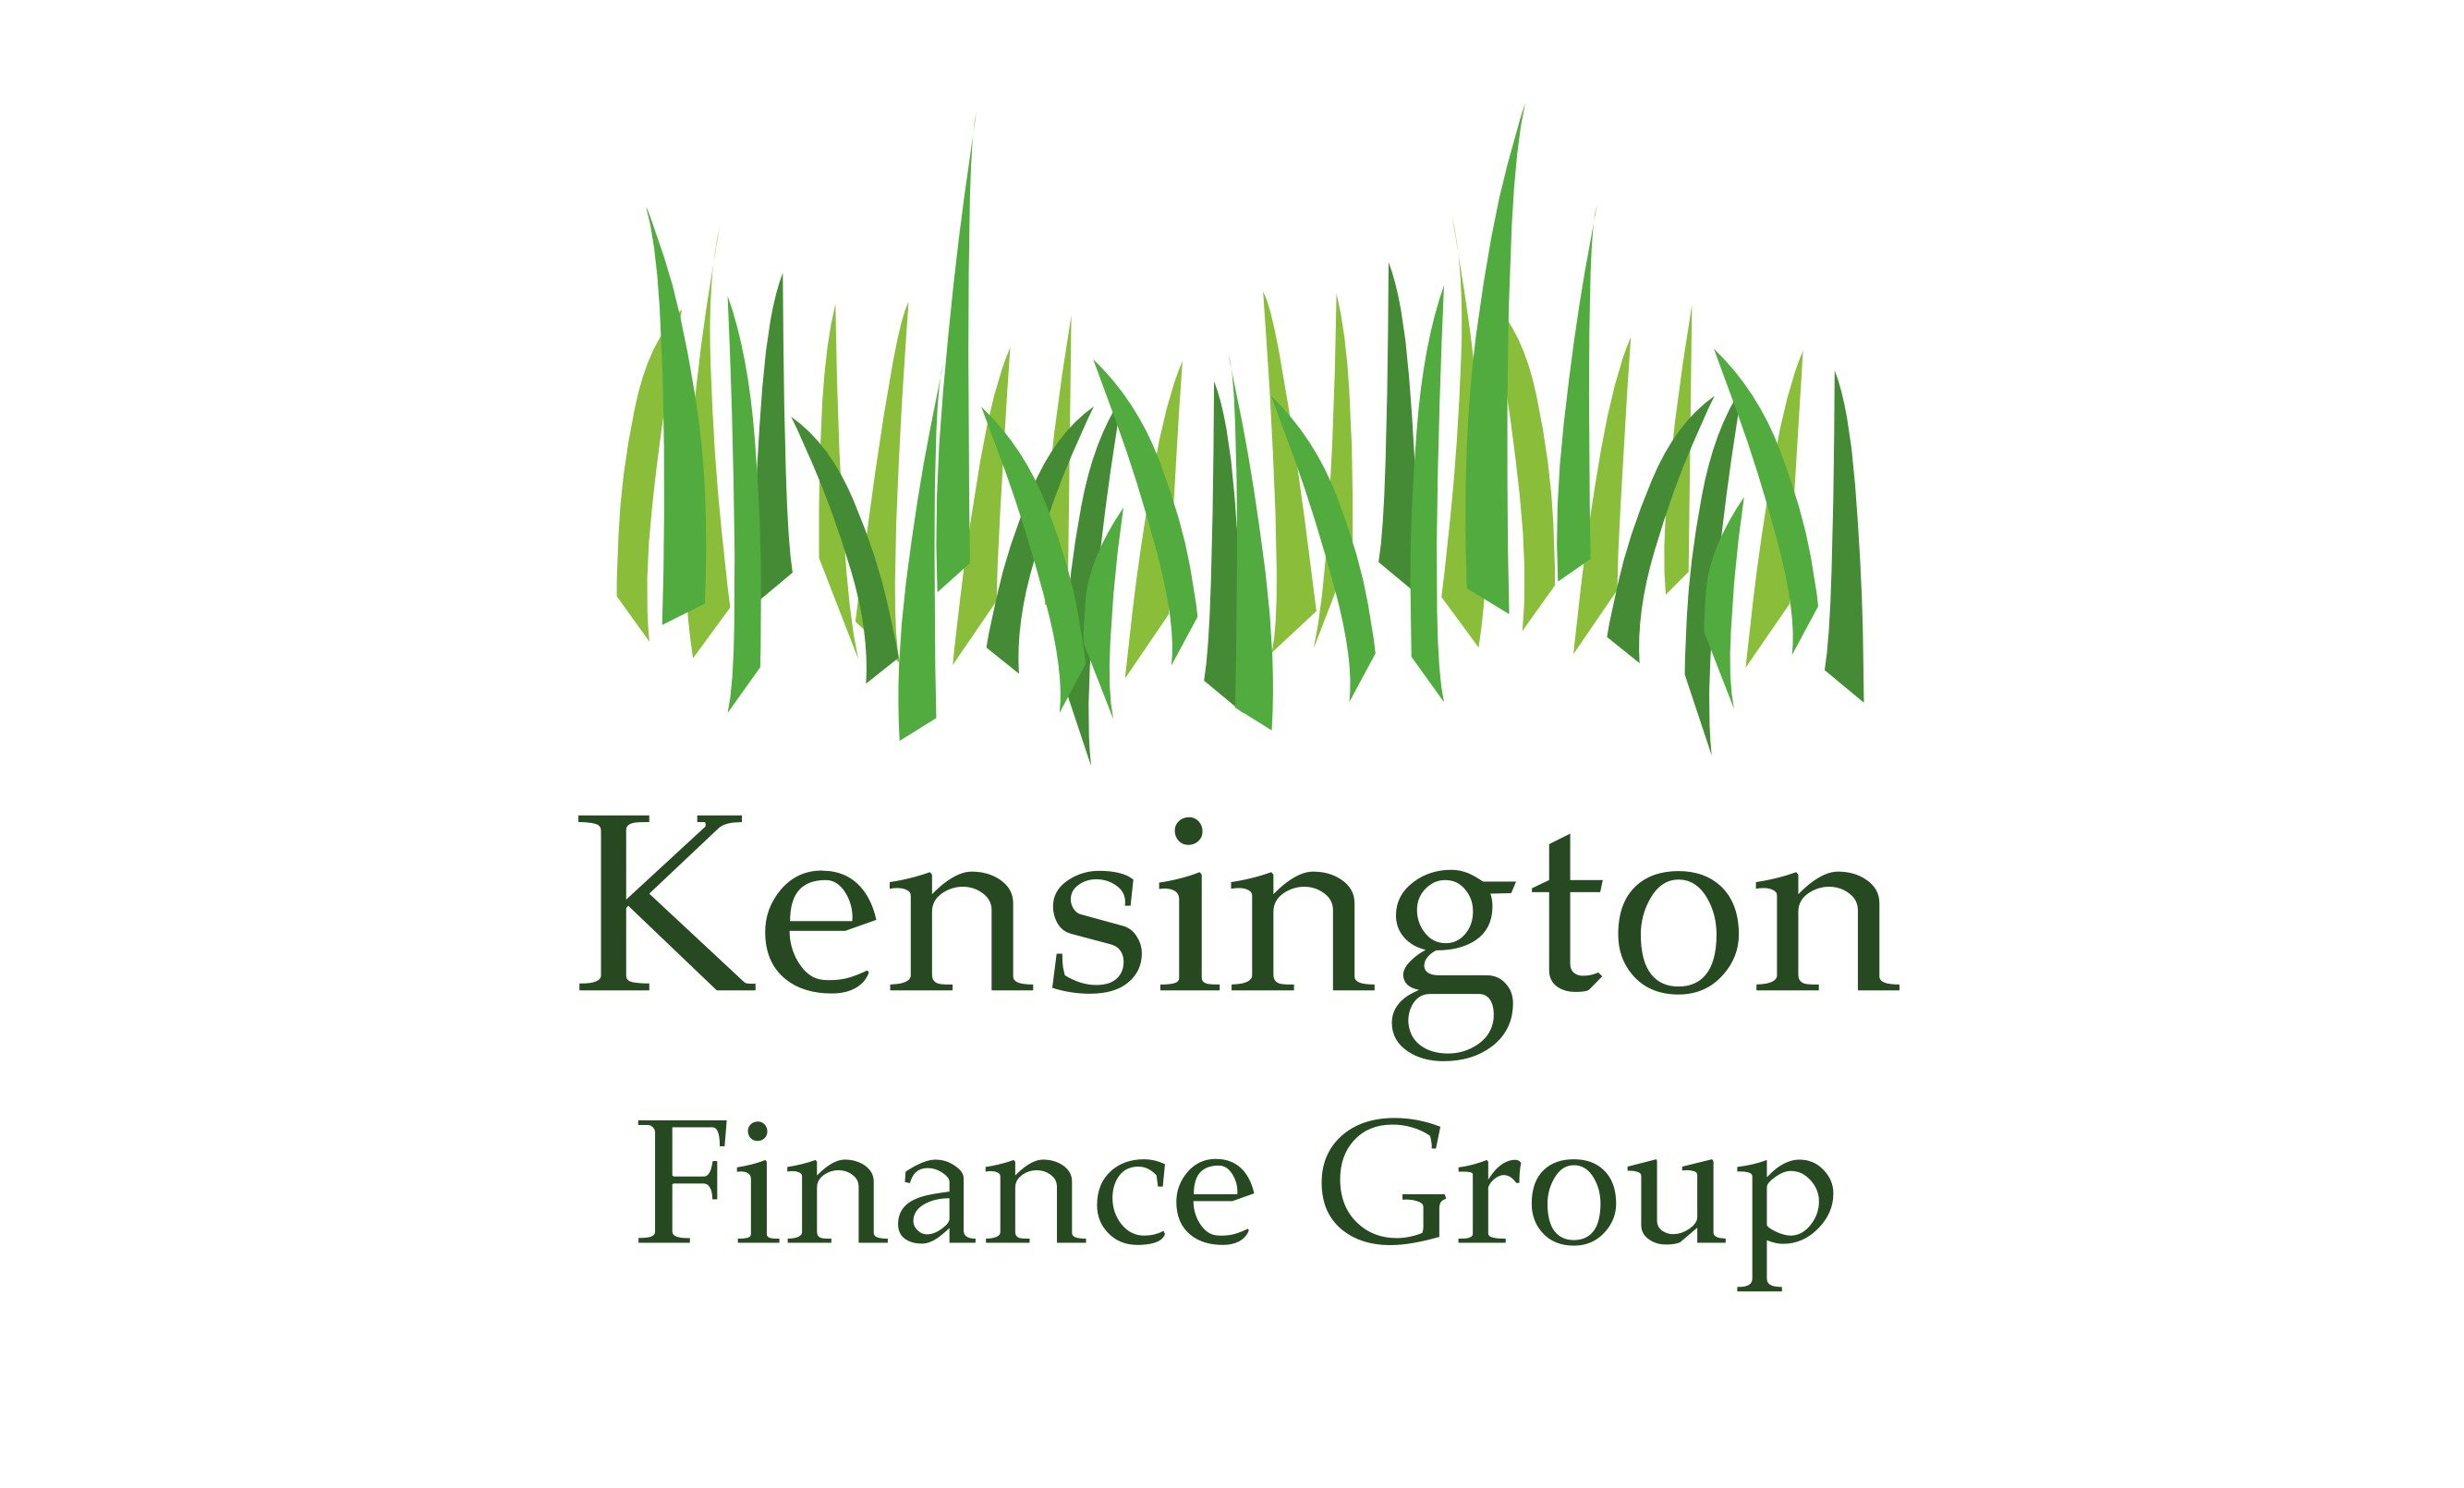 Kensington Finance Group